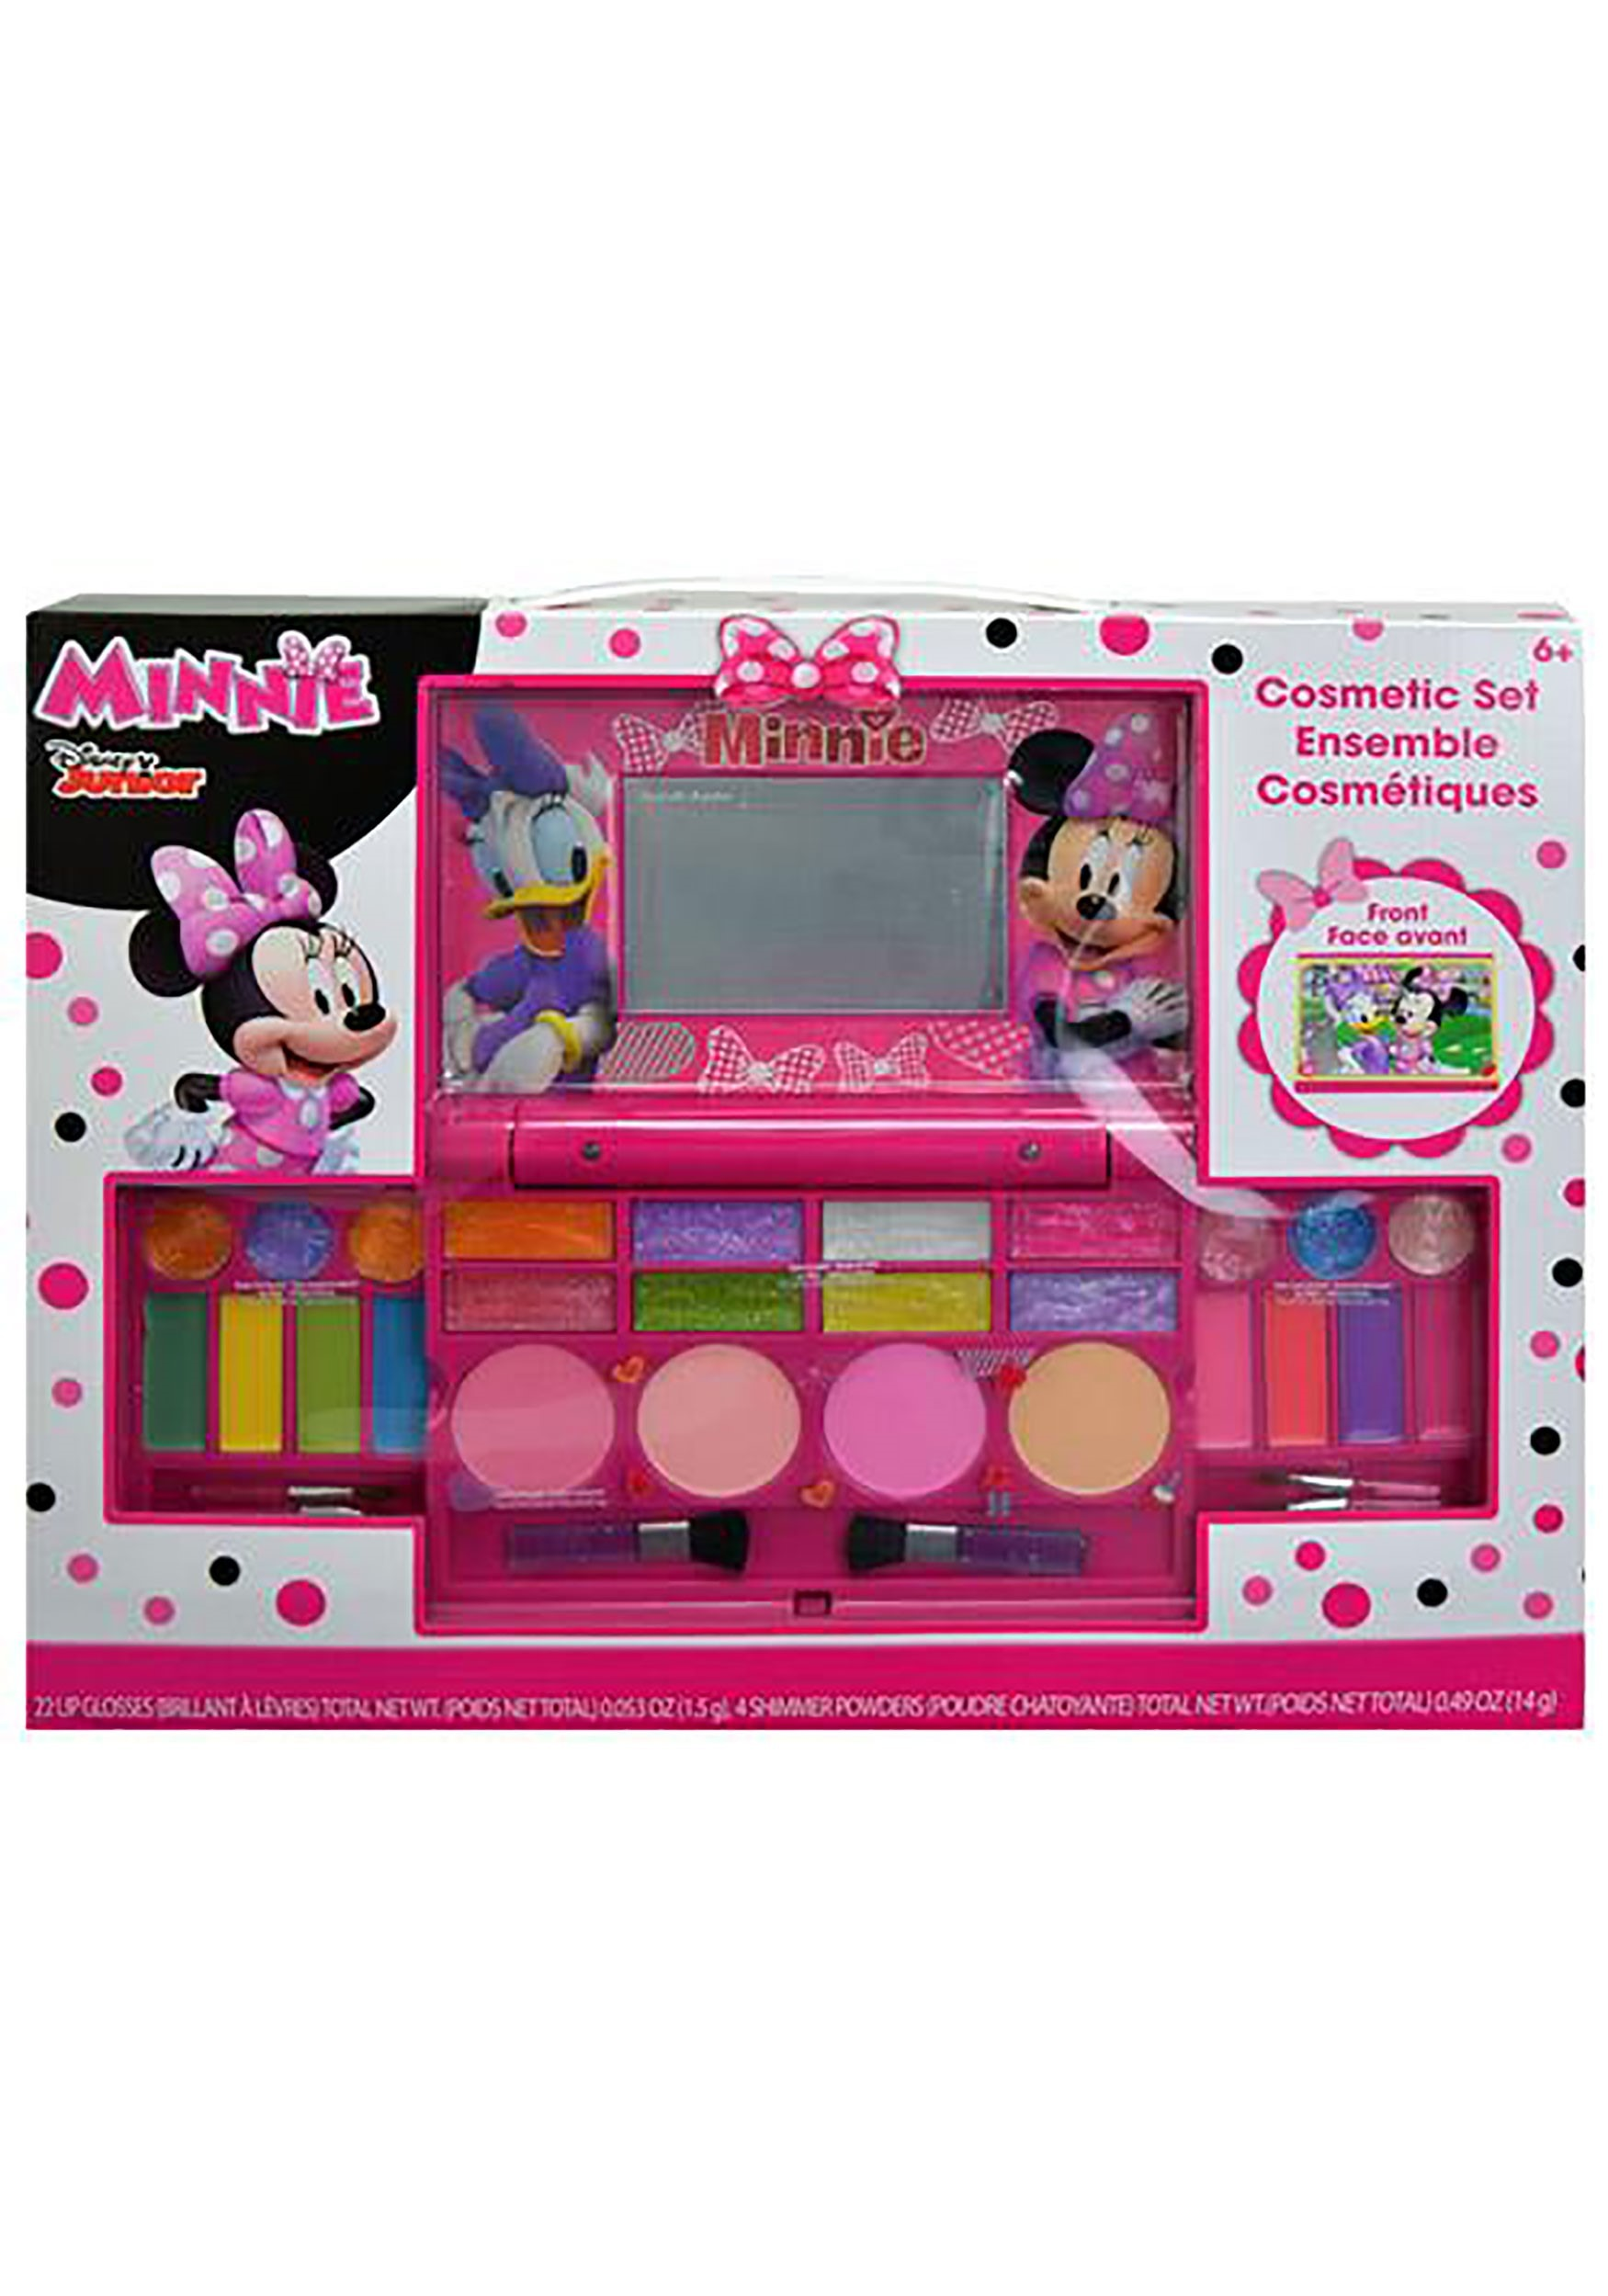 Minnie Mouse Cosmetic Compact Set Disney Gifts